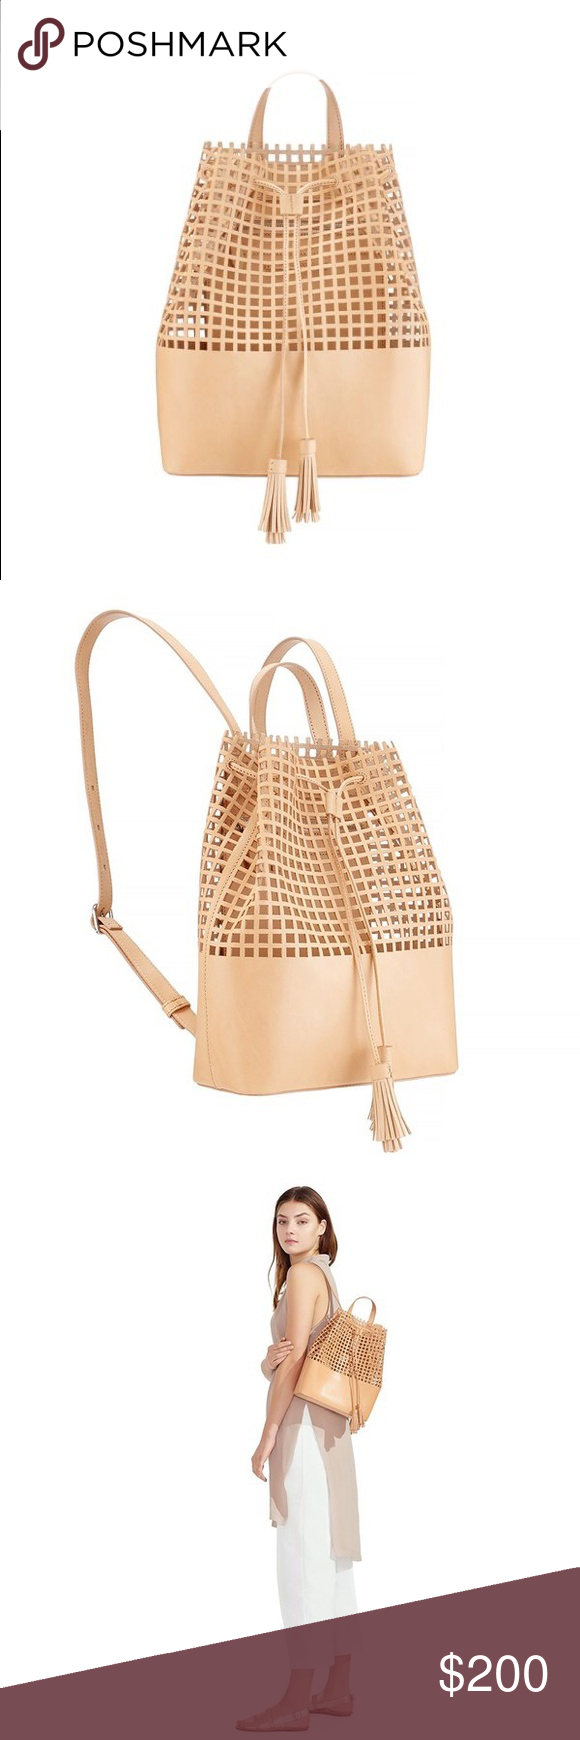 """Loeffler Randall Tassel Backpack Perforated leather backpack in light cuoio with tassel drawstring. natural square perforated leather with tassel drawstring L 9.5"""" X D 4"""" X H 12.5"""". Vachetta Leather. Gently used with slight water marks (see last picture). Loeffler Randall Bags Backpacks"""